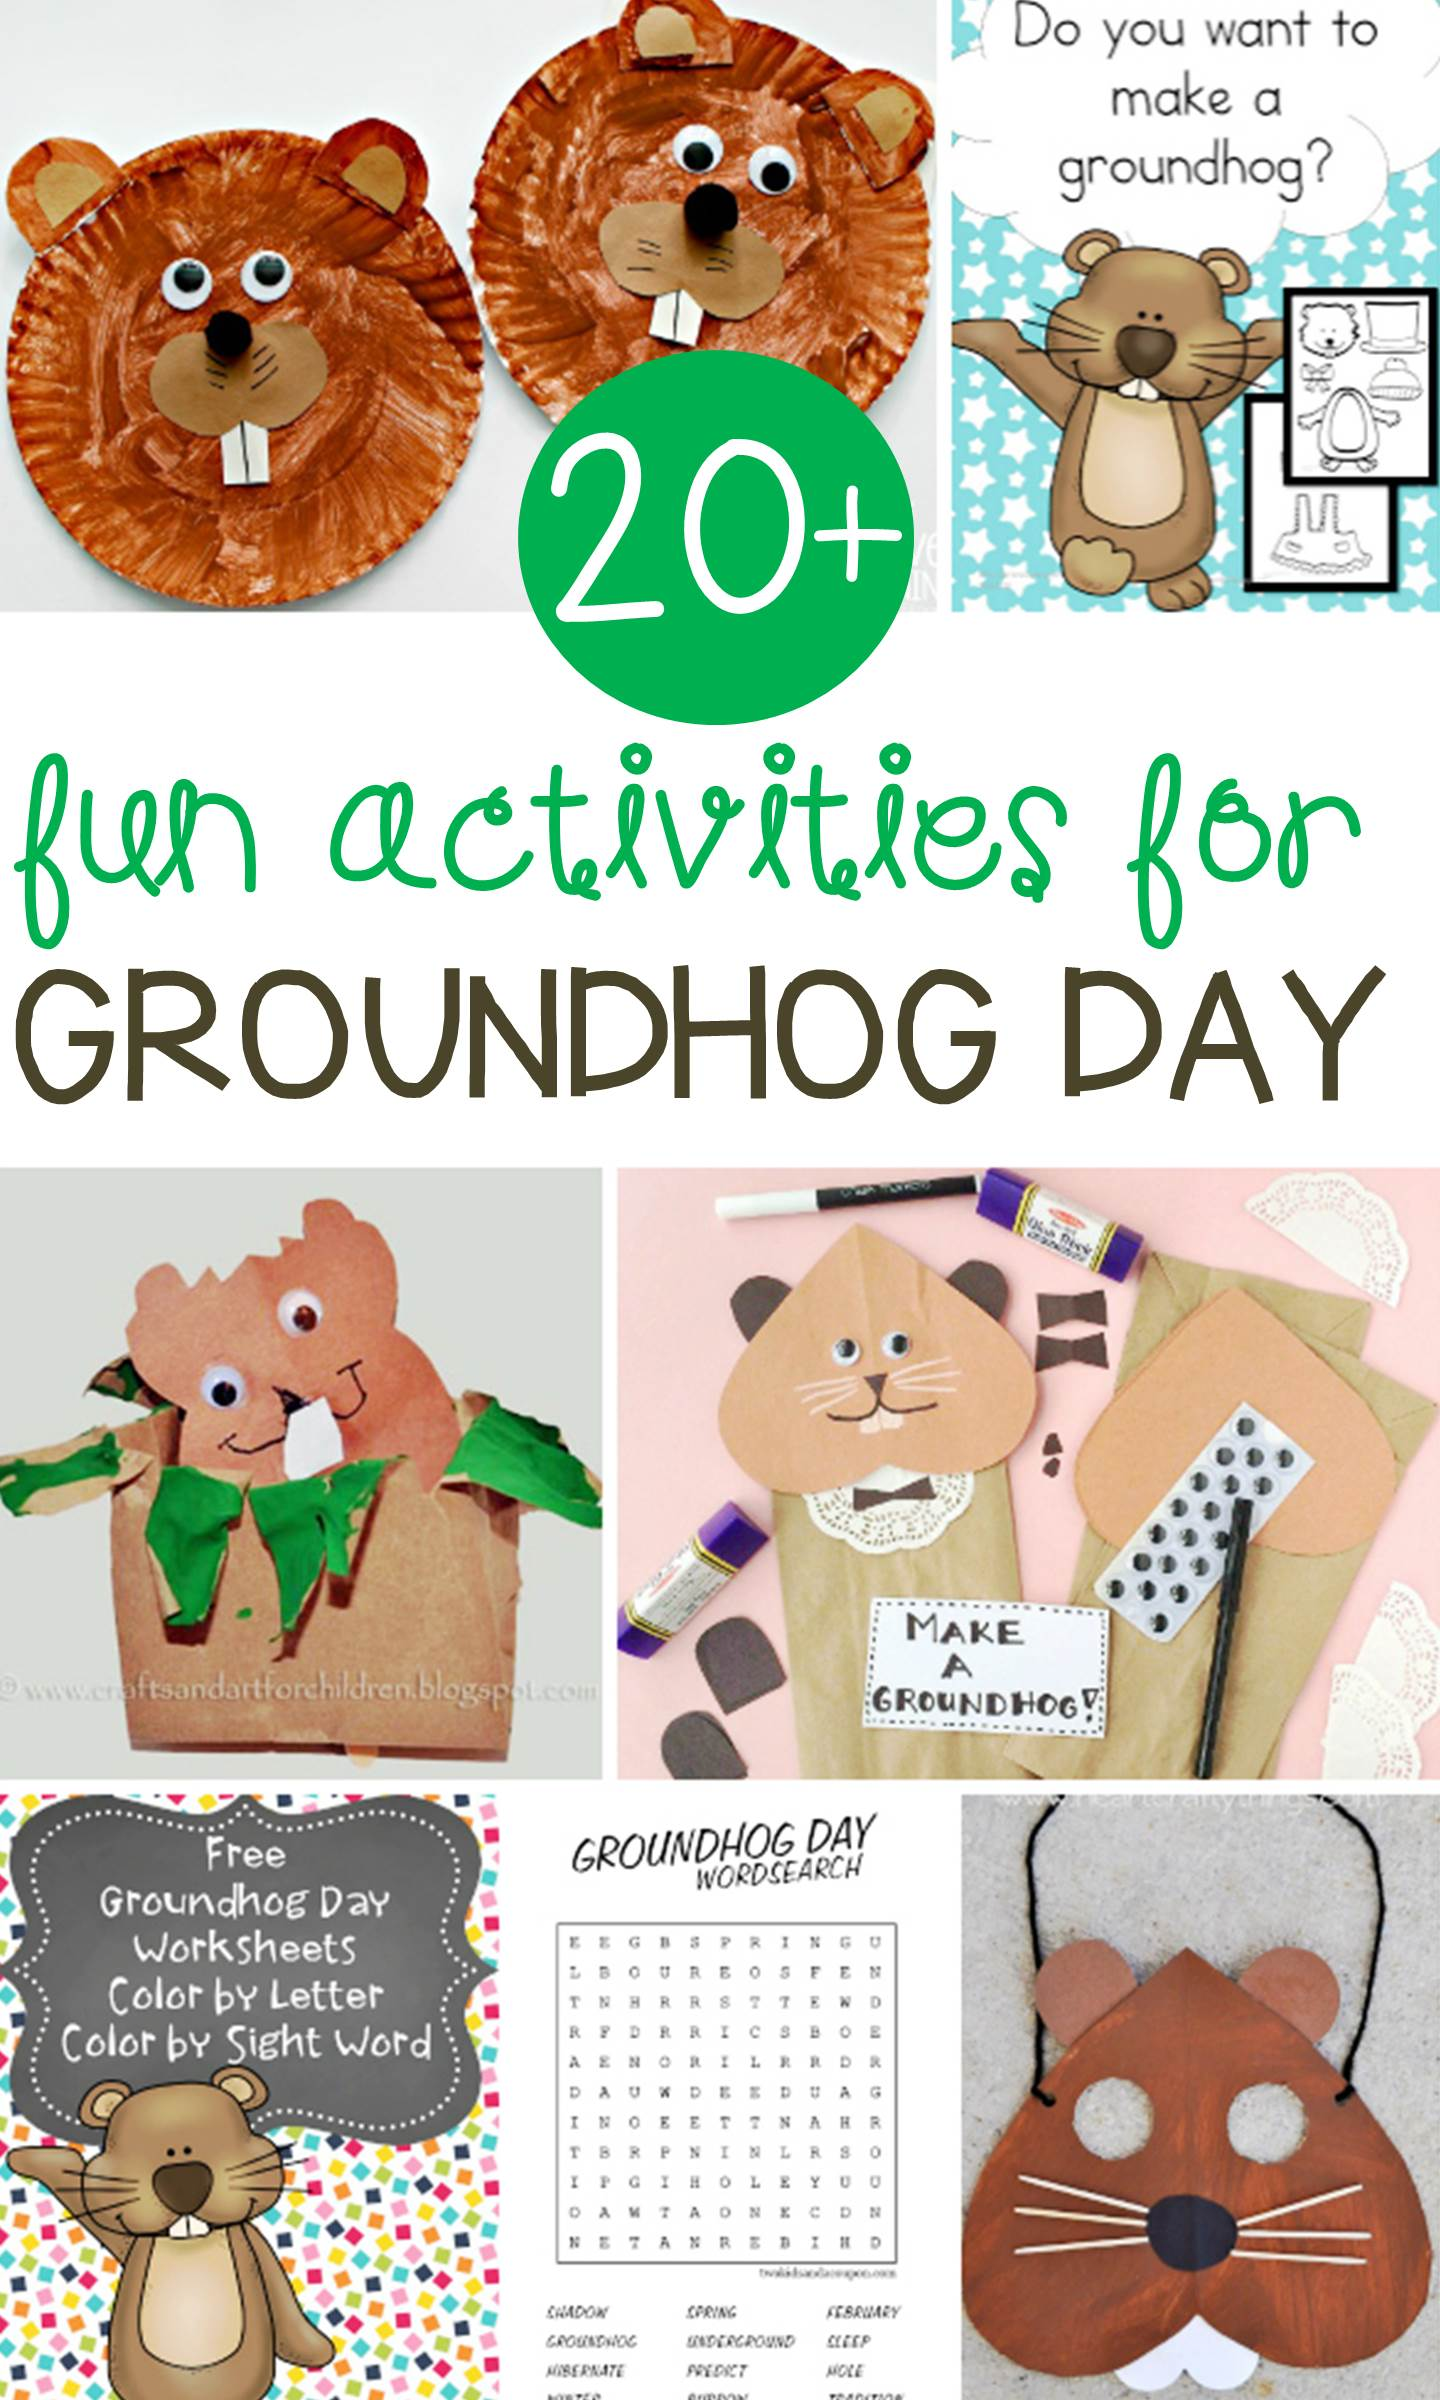 Groundhog Day activities for kids!